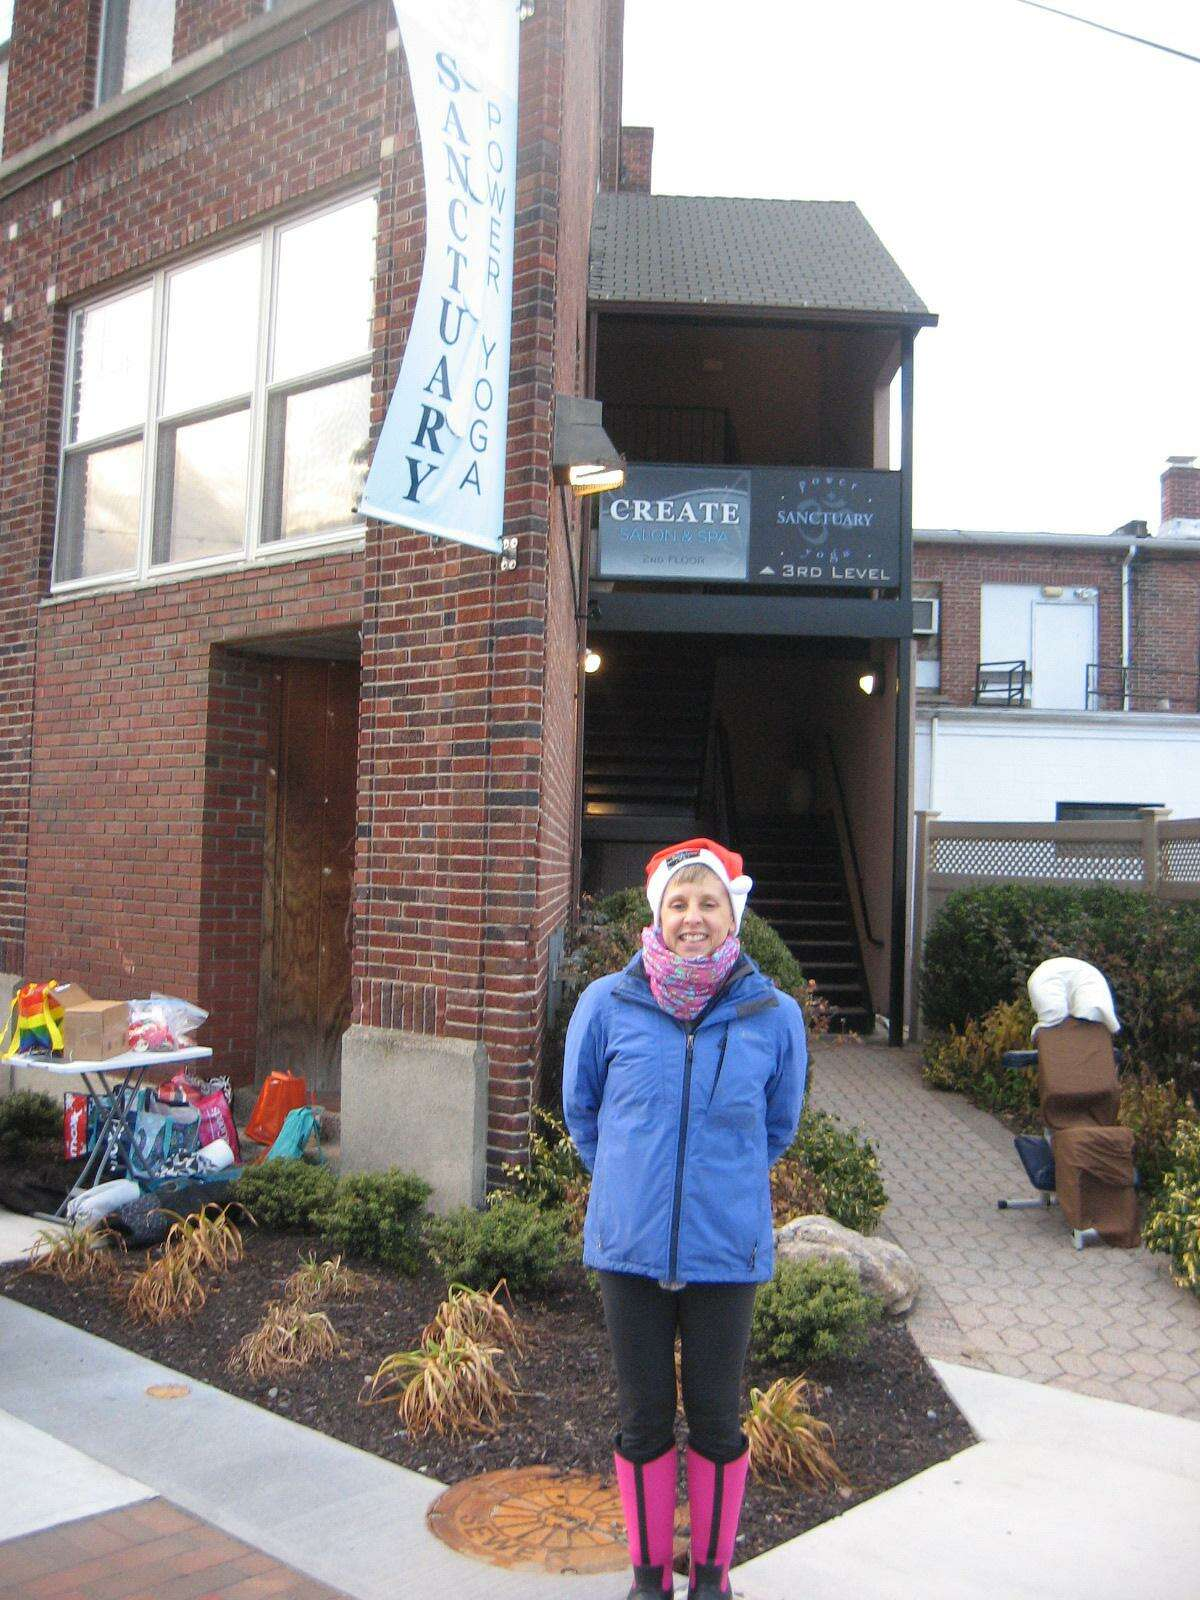 Heather Rems Korwin, owner of Sanctuary Yoga at Franklin Plaza in Torrington, organized